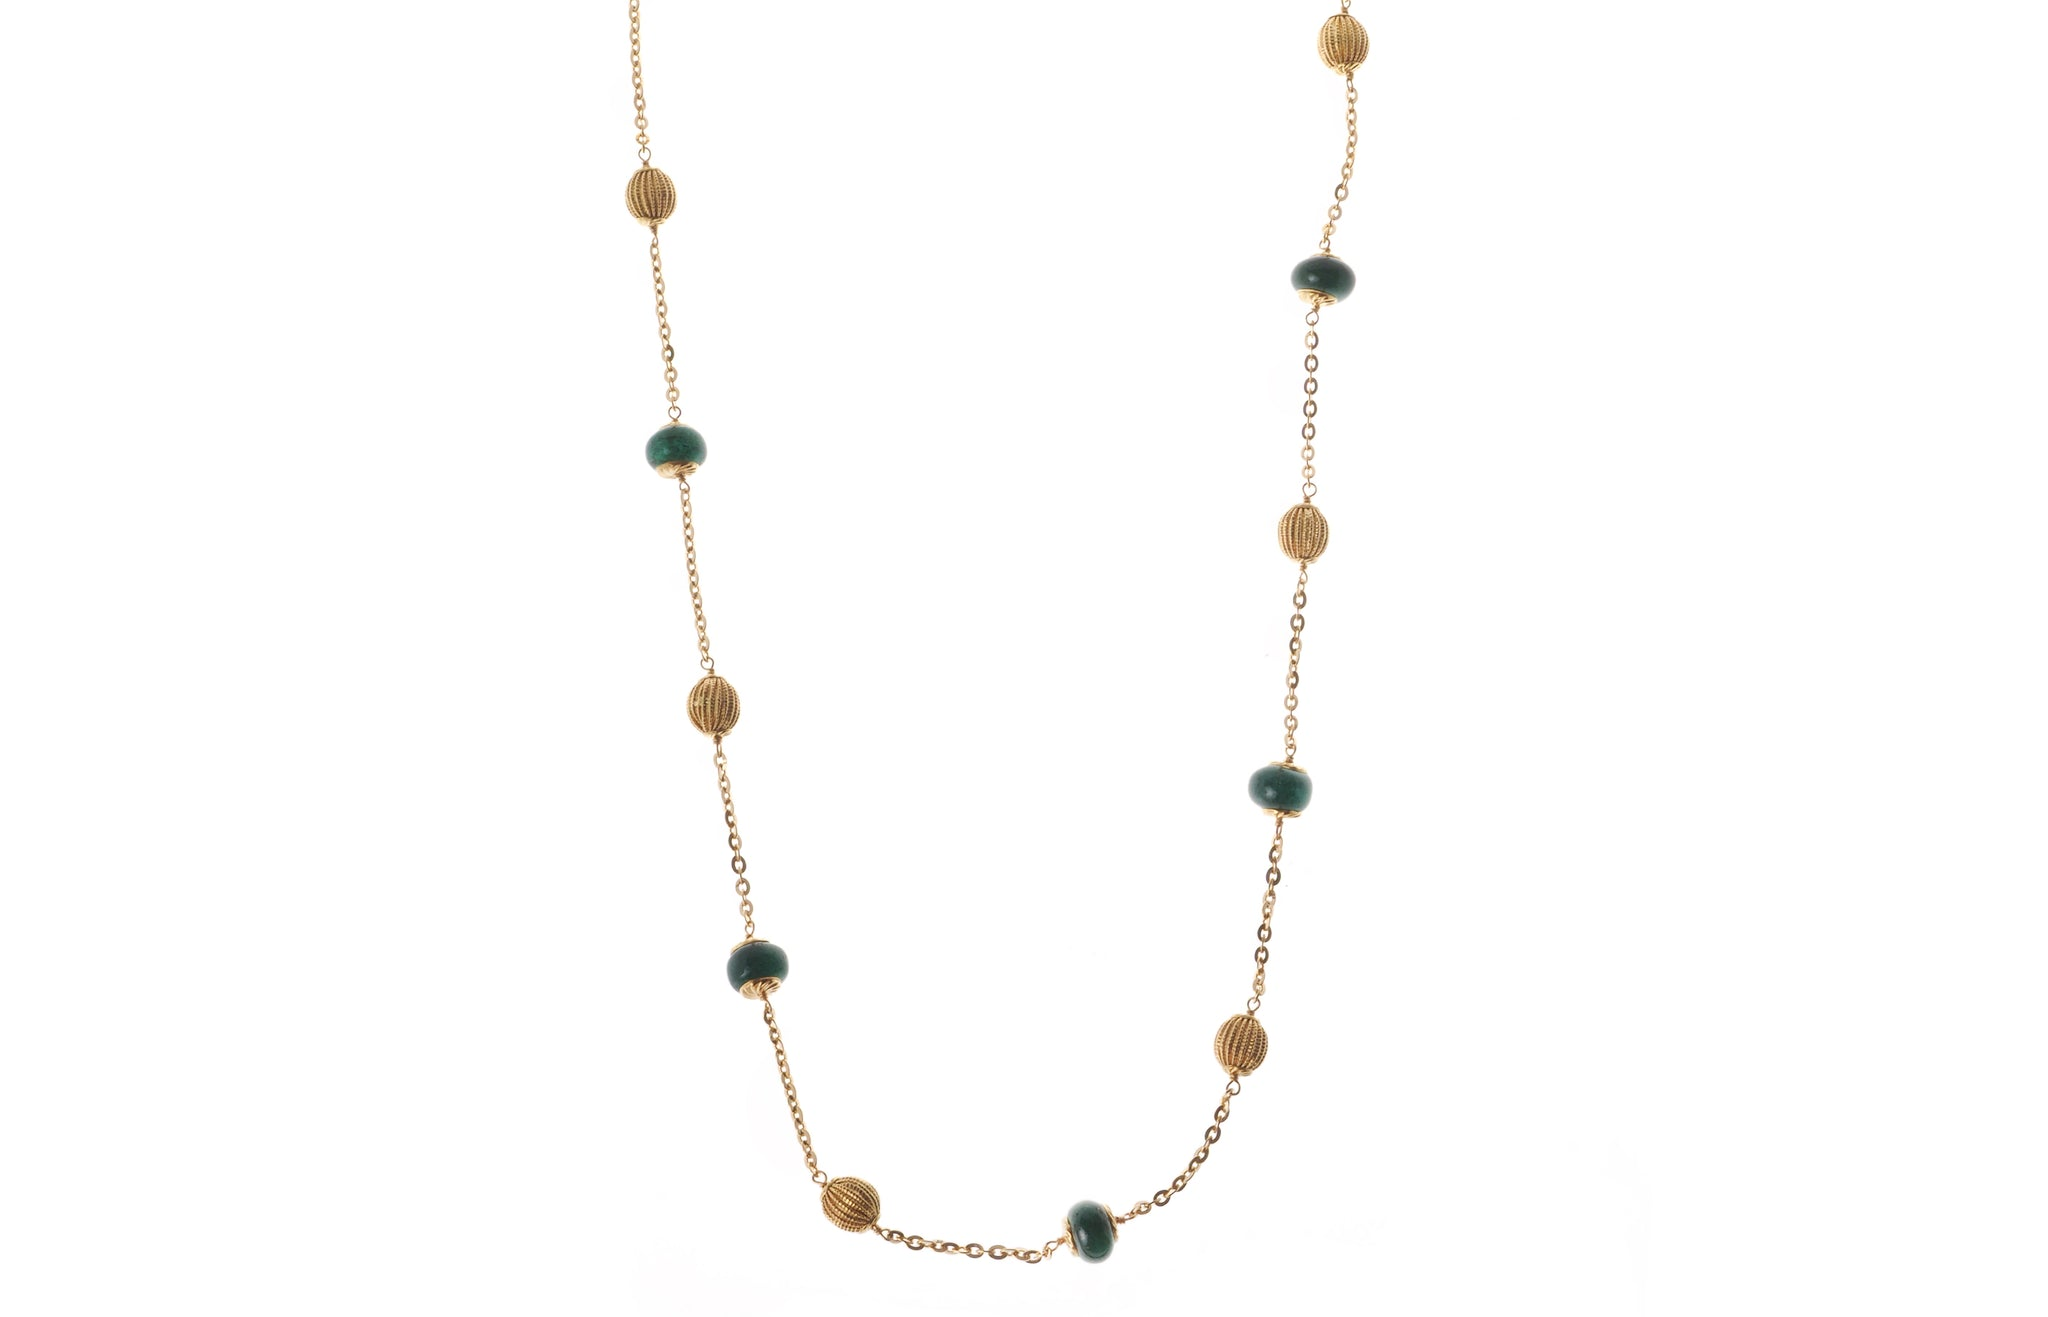 22ct Gold Antiquated Look Necklace with diamond cut design and treated Emeralds (GMS-C18535)